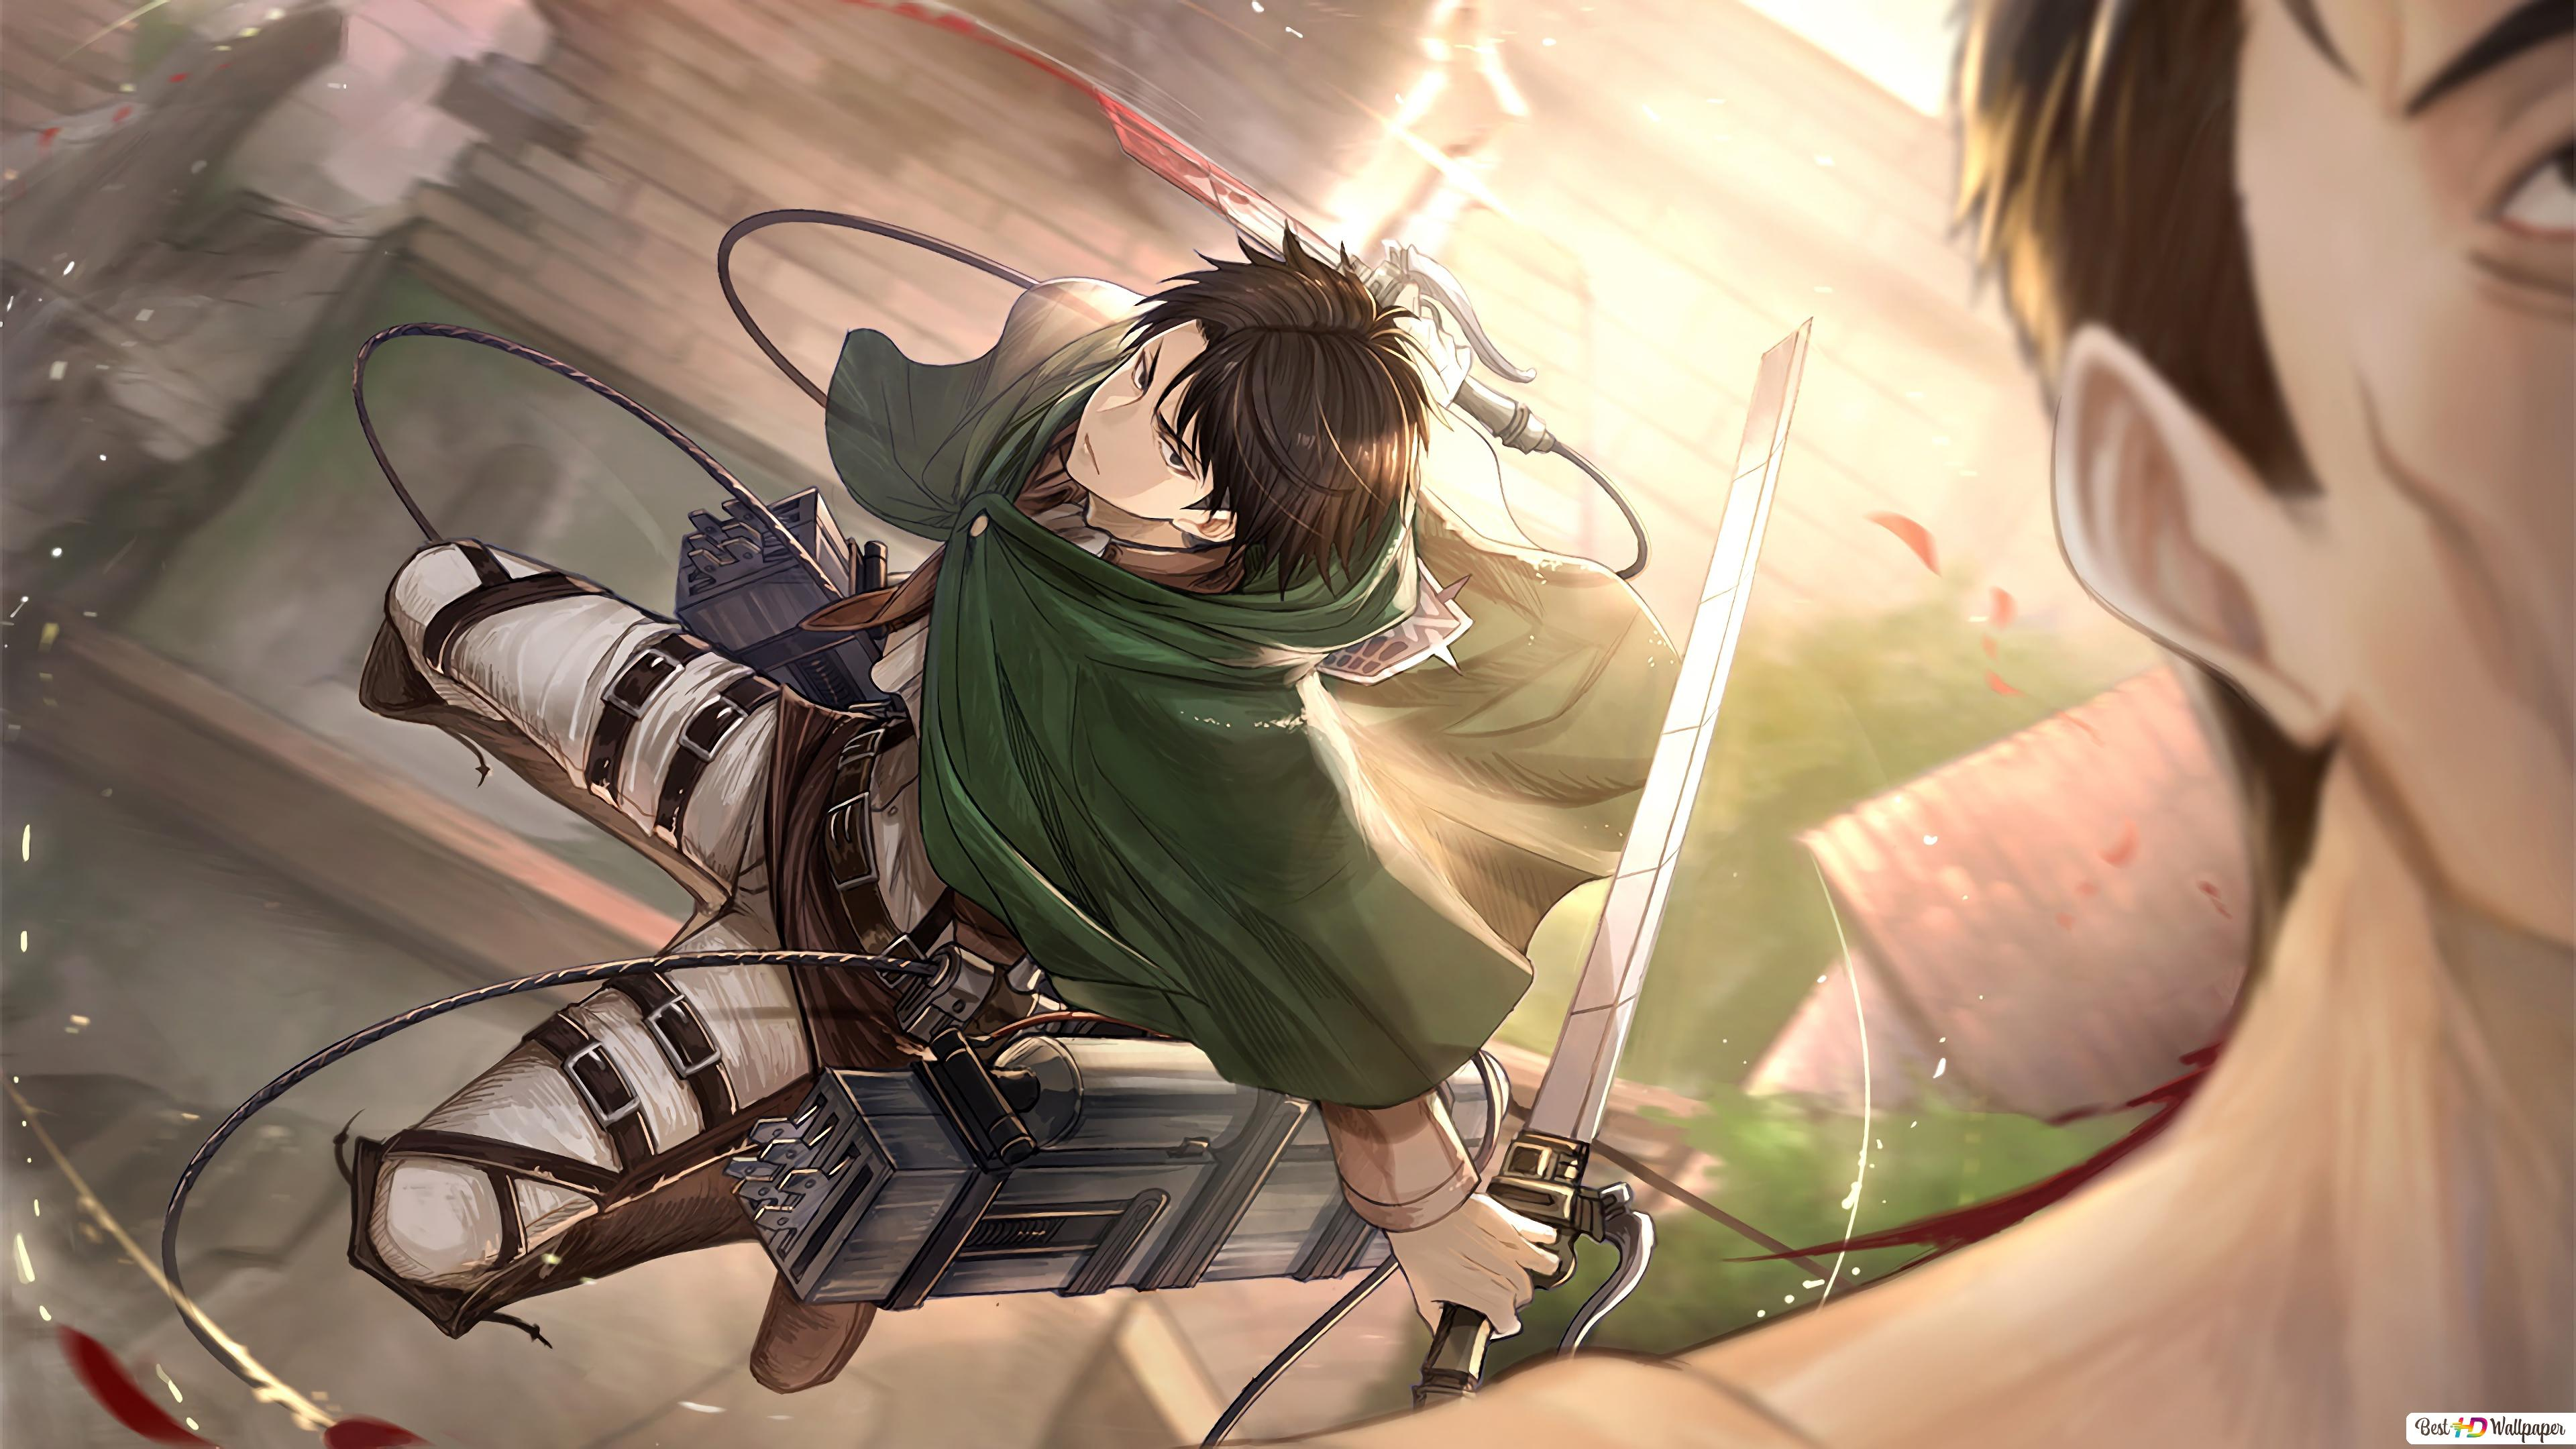 Attack On Titan Levi Ackerman For The Kill Hd Wallpaper Download